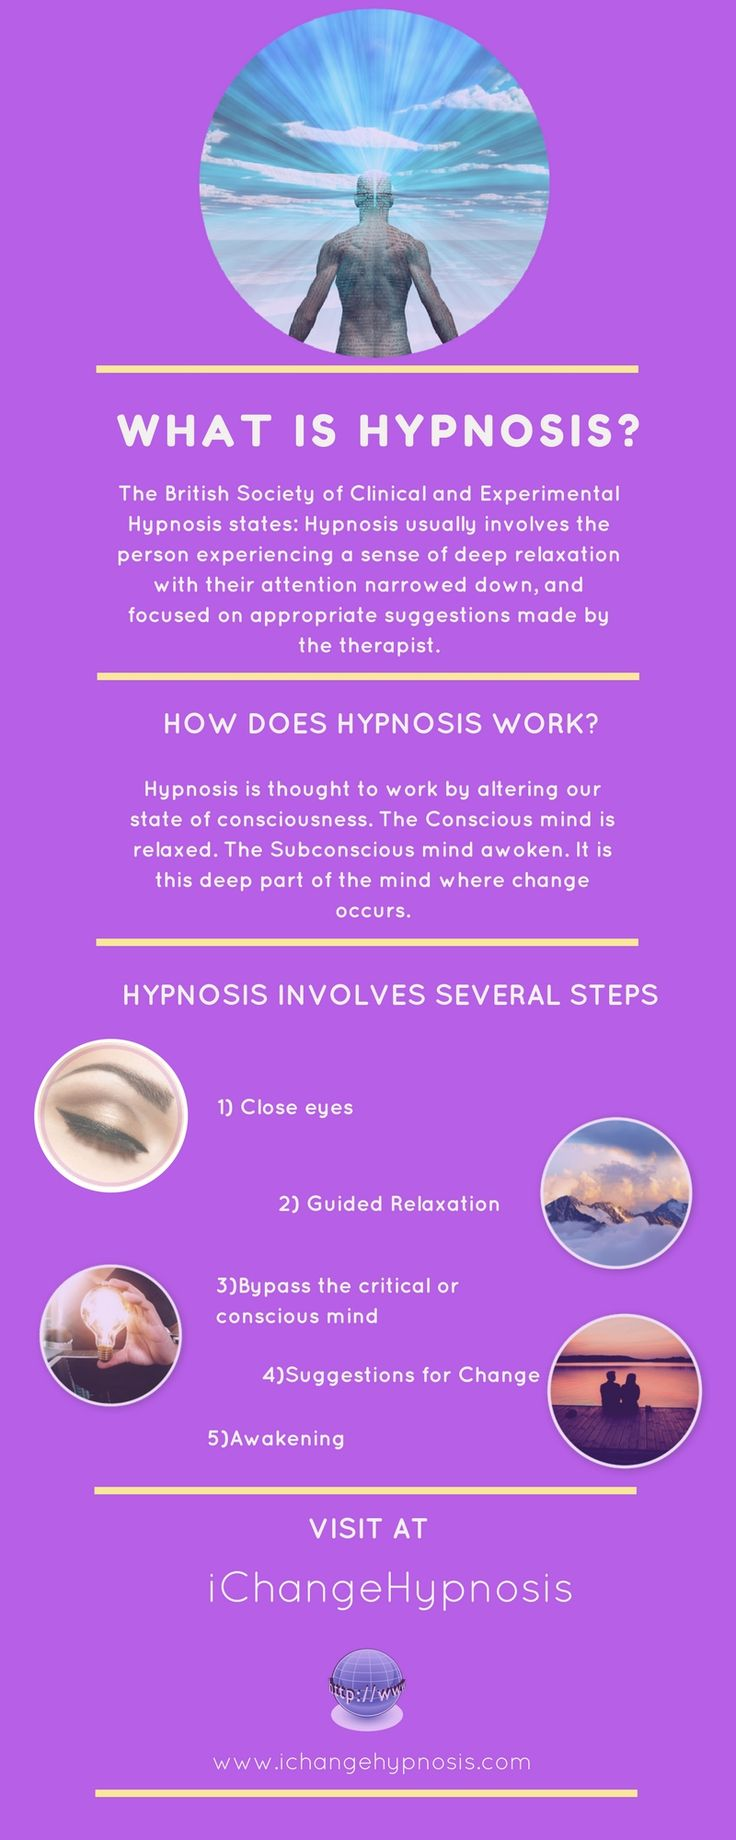 What is Hypnosis - iChange Hypnosis